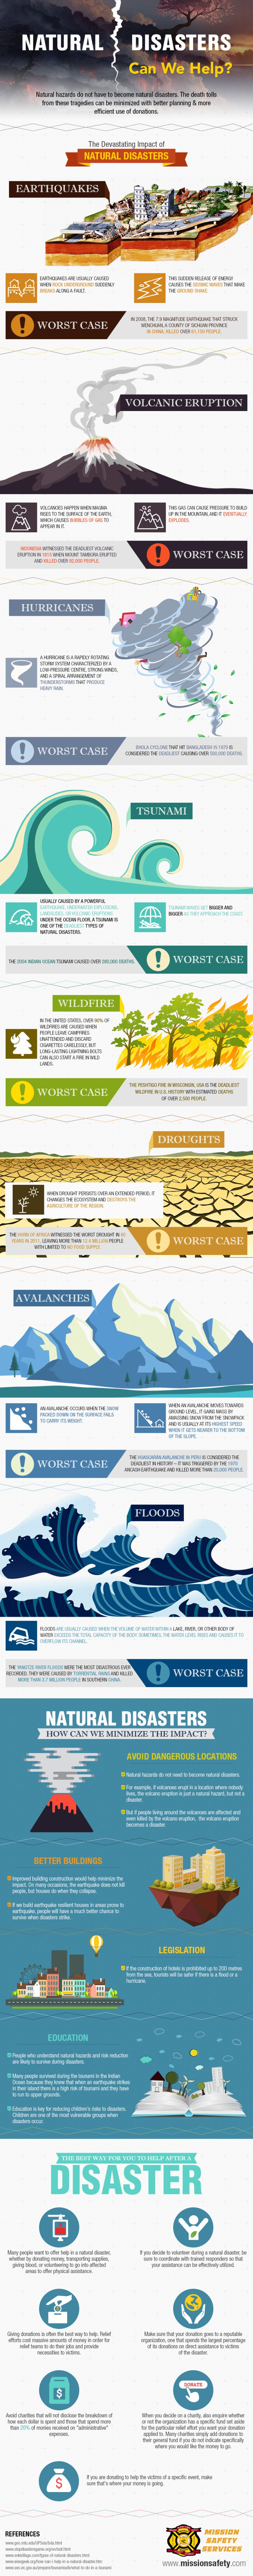 Natural Disasters: How can we help [Infographic] | ecogreenlove